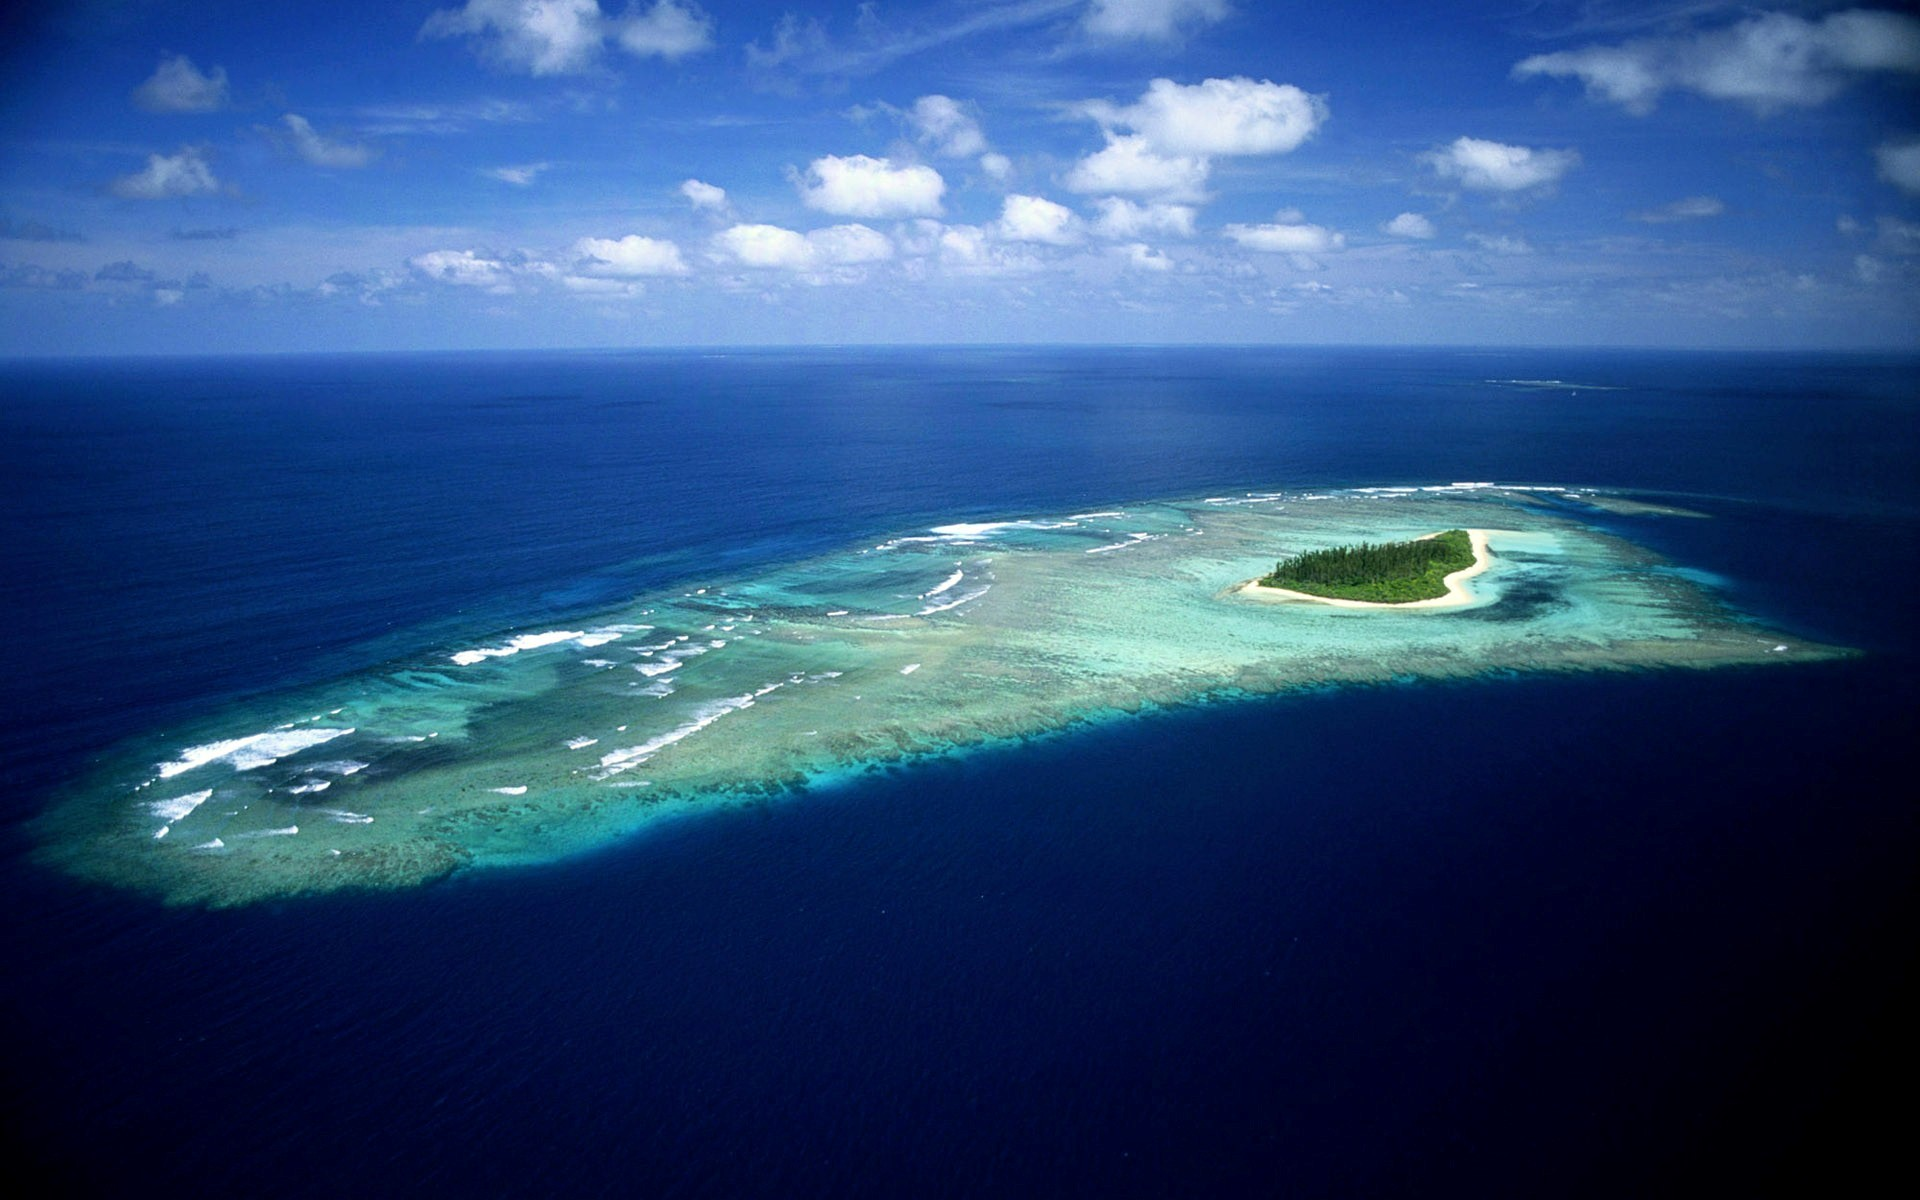 Maldives Islands Images HD Wallpapers 1920x1200